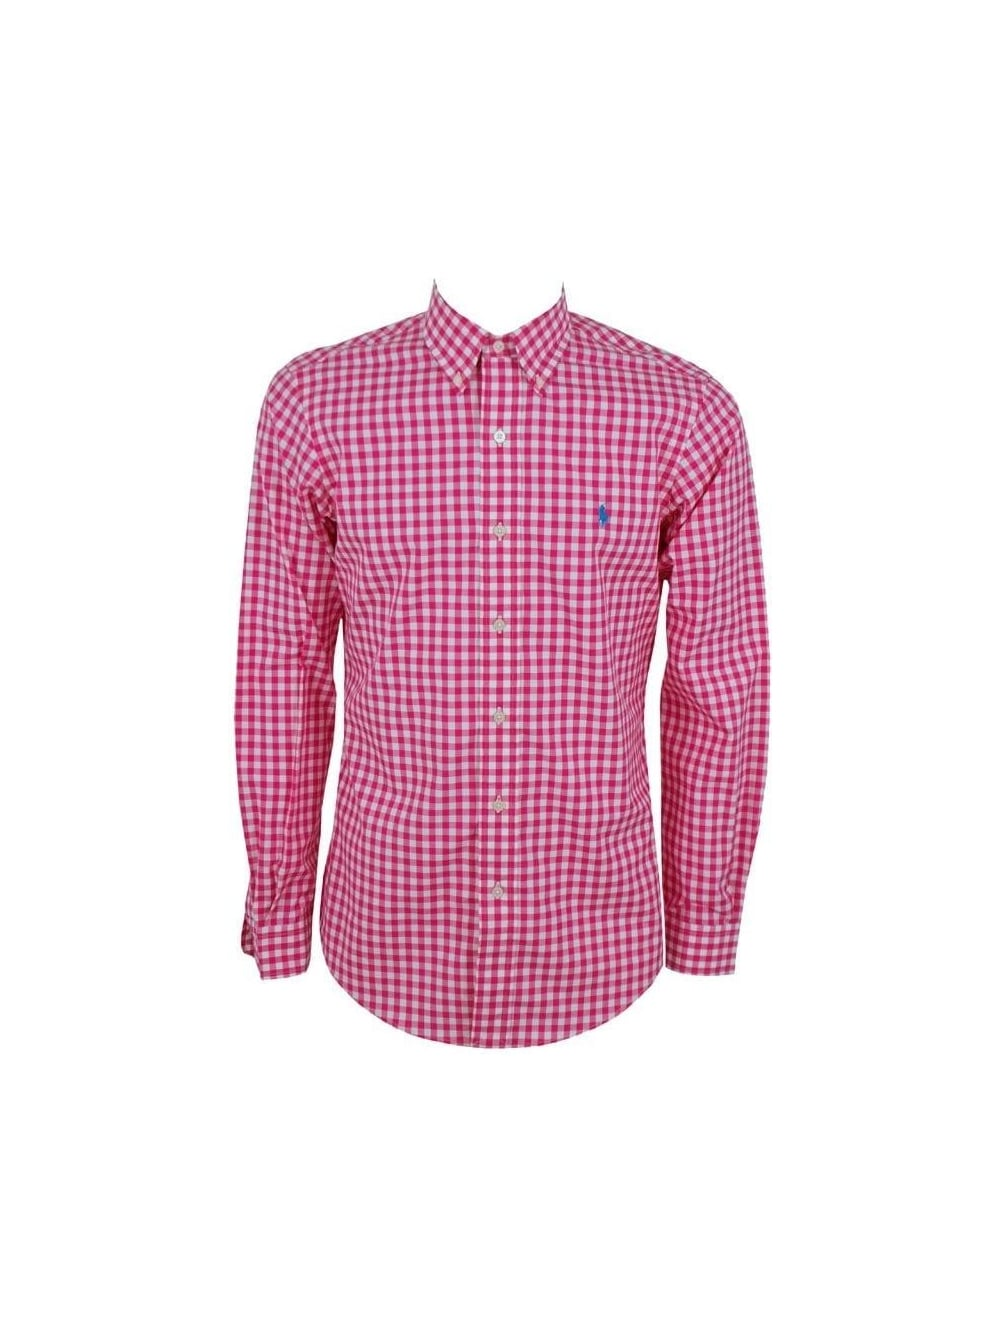 314c5a8f Ralph Lauren Custom Fit Cotton Twill Shirt in Magenta - Northern Threads